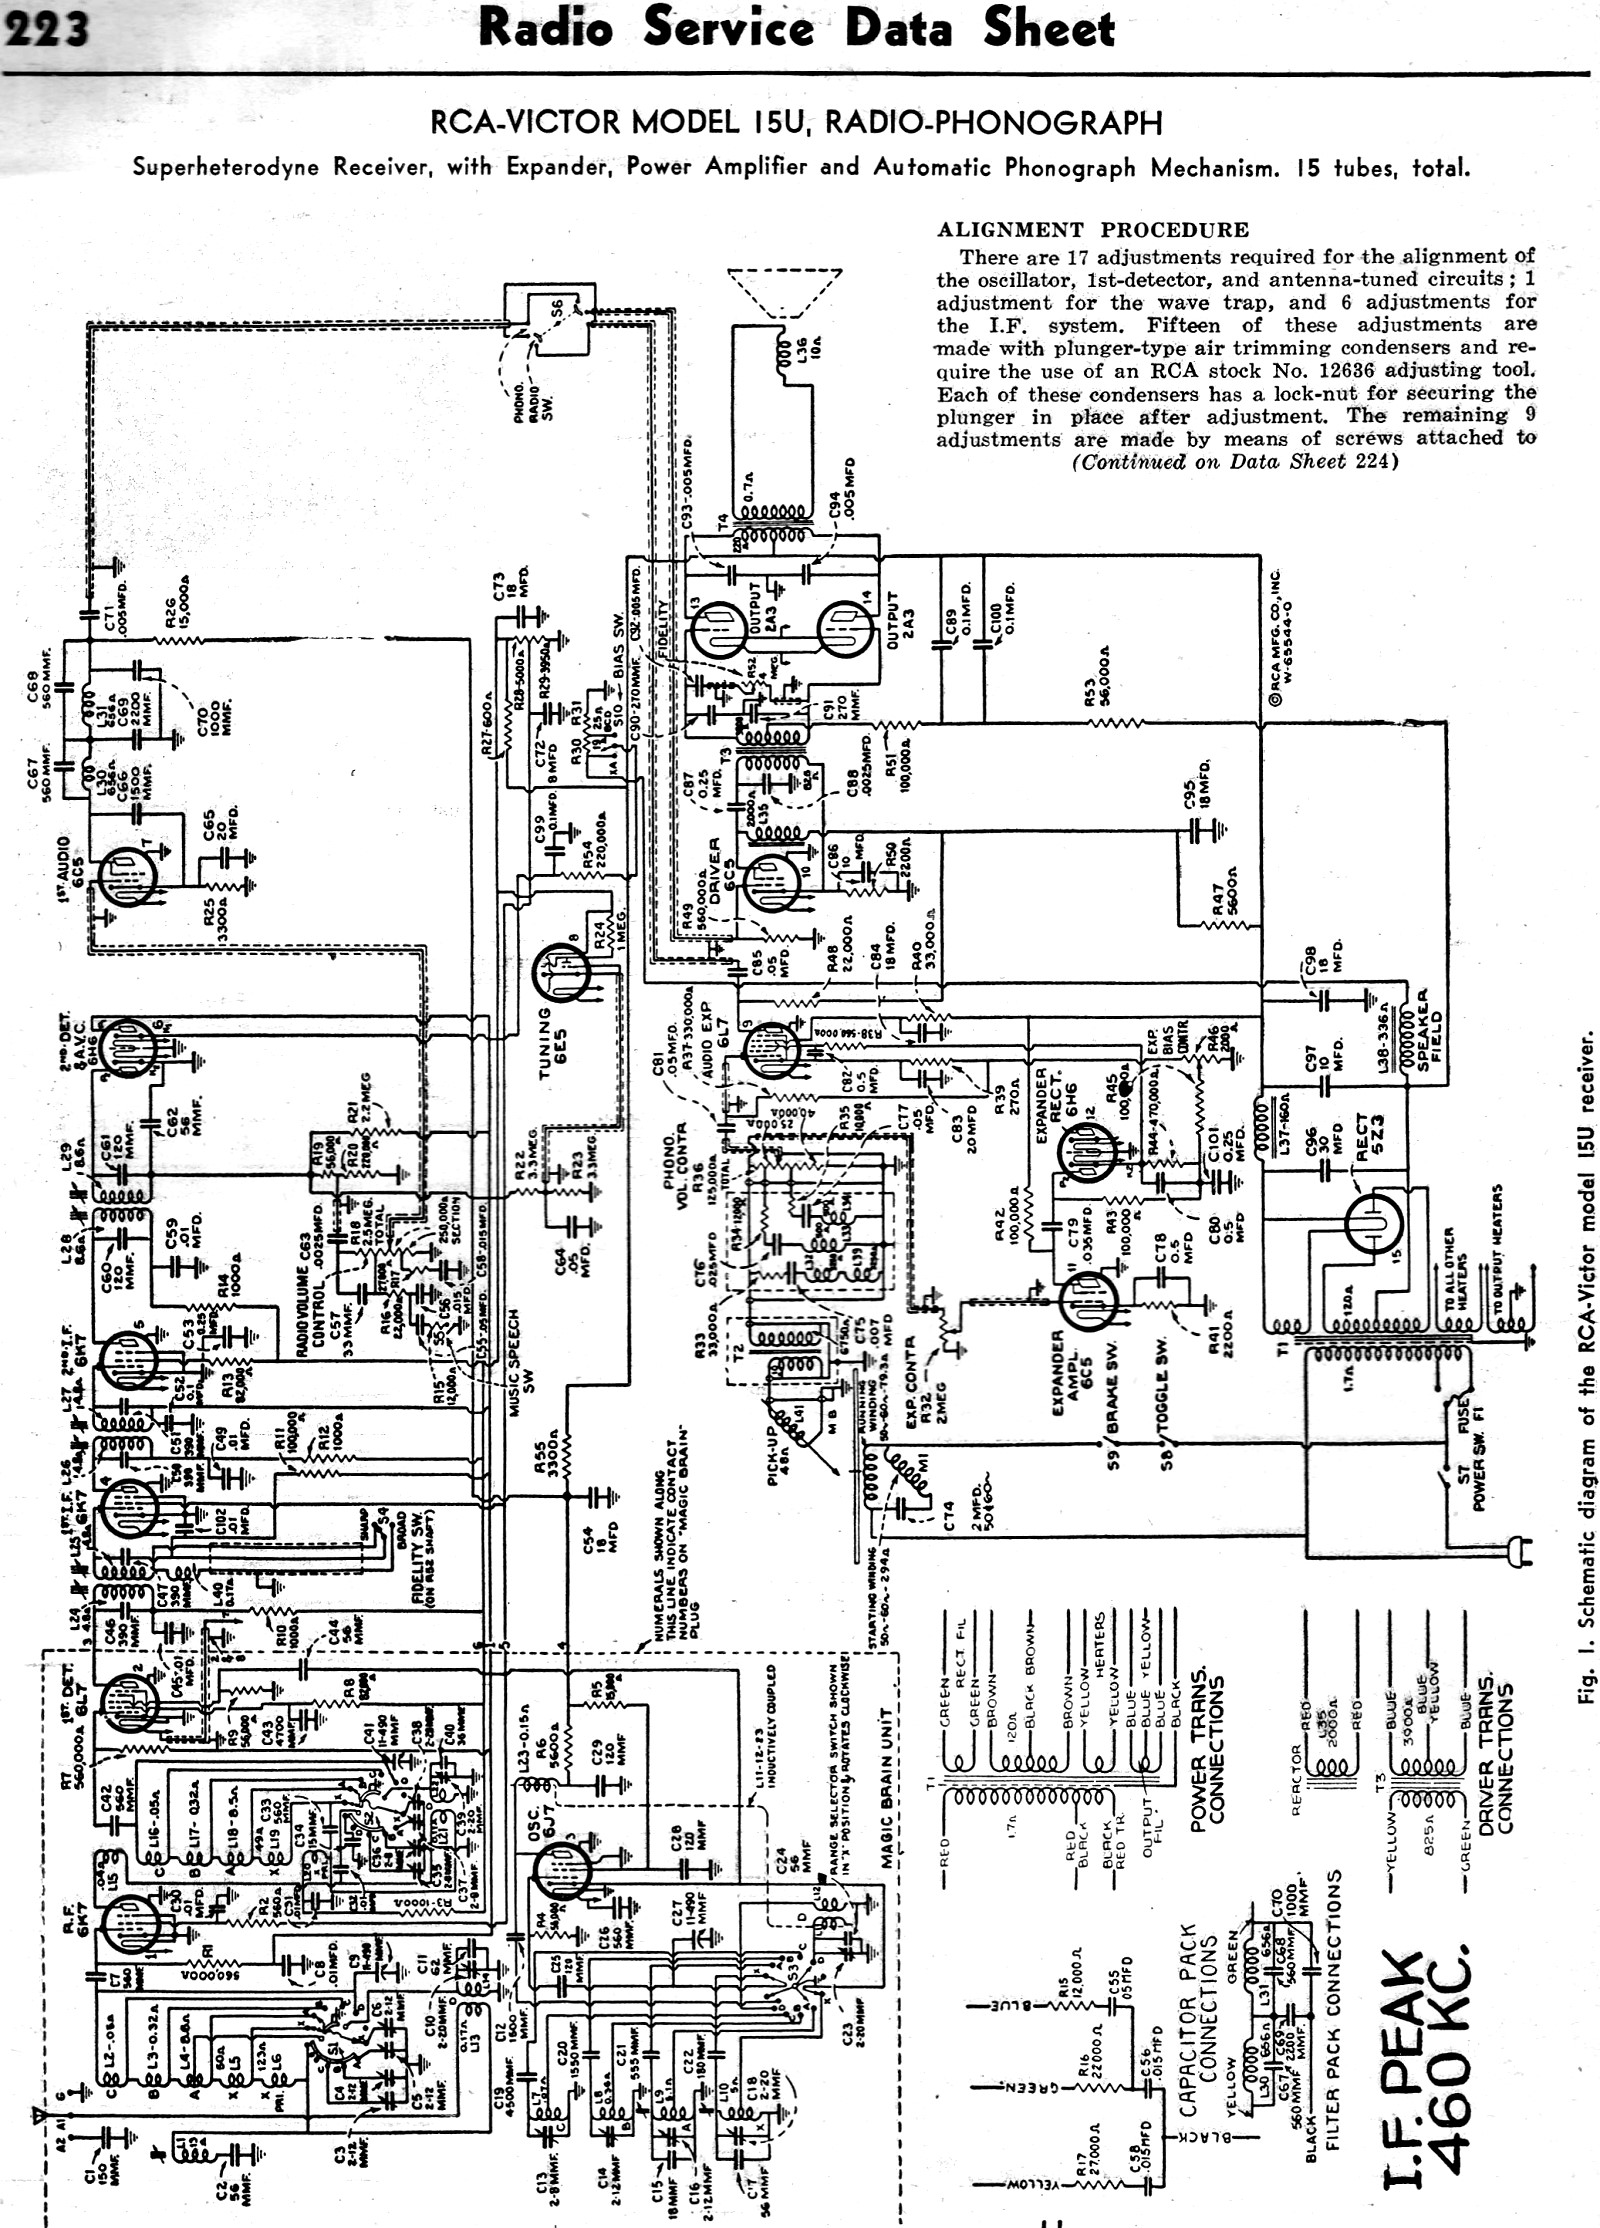 Rcavictor Model 15u Radiophonograph April 1938 Radiocraft Rf Cafe. Rcavictor Model 15u Sheet 3 Radiophonograph April 1938. Wiring. Zenith Tube Radio Schematics 1938 At Scoala.co